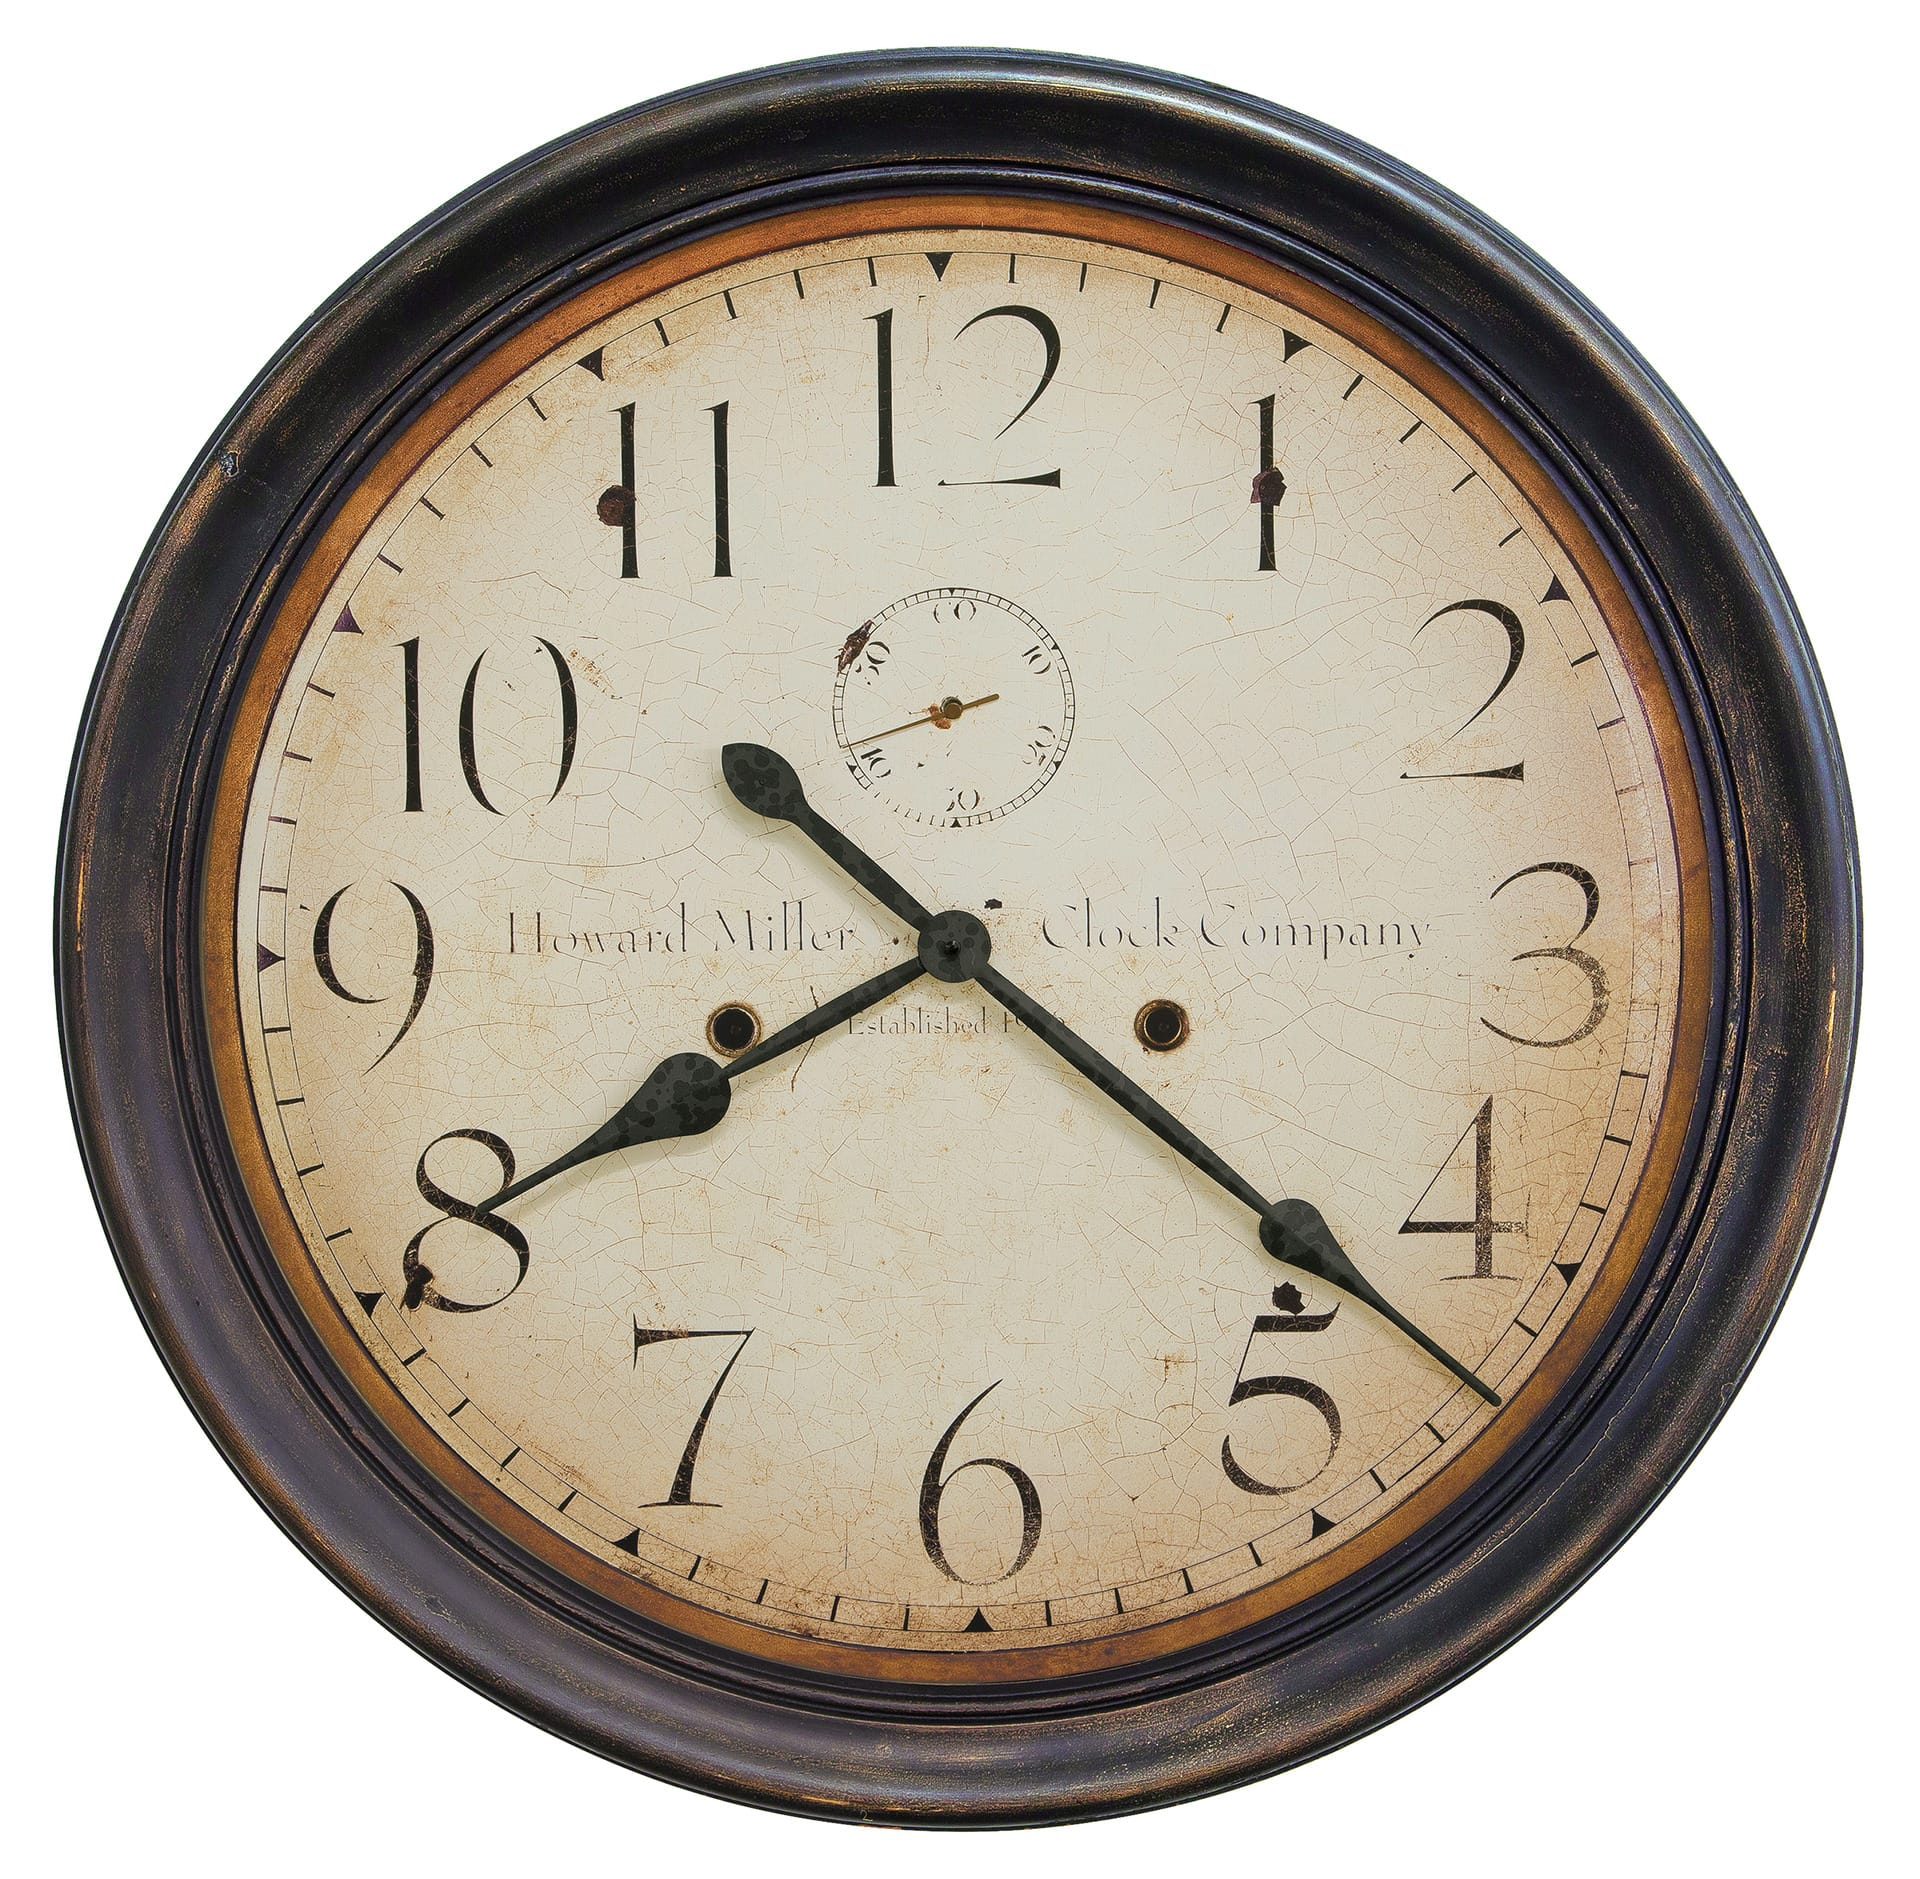 625 627 Squire Wall Clock By Howard Miller